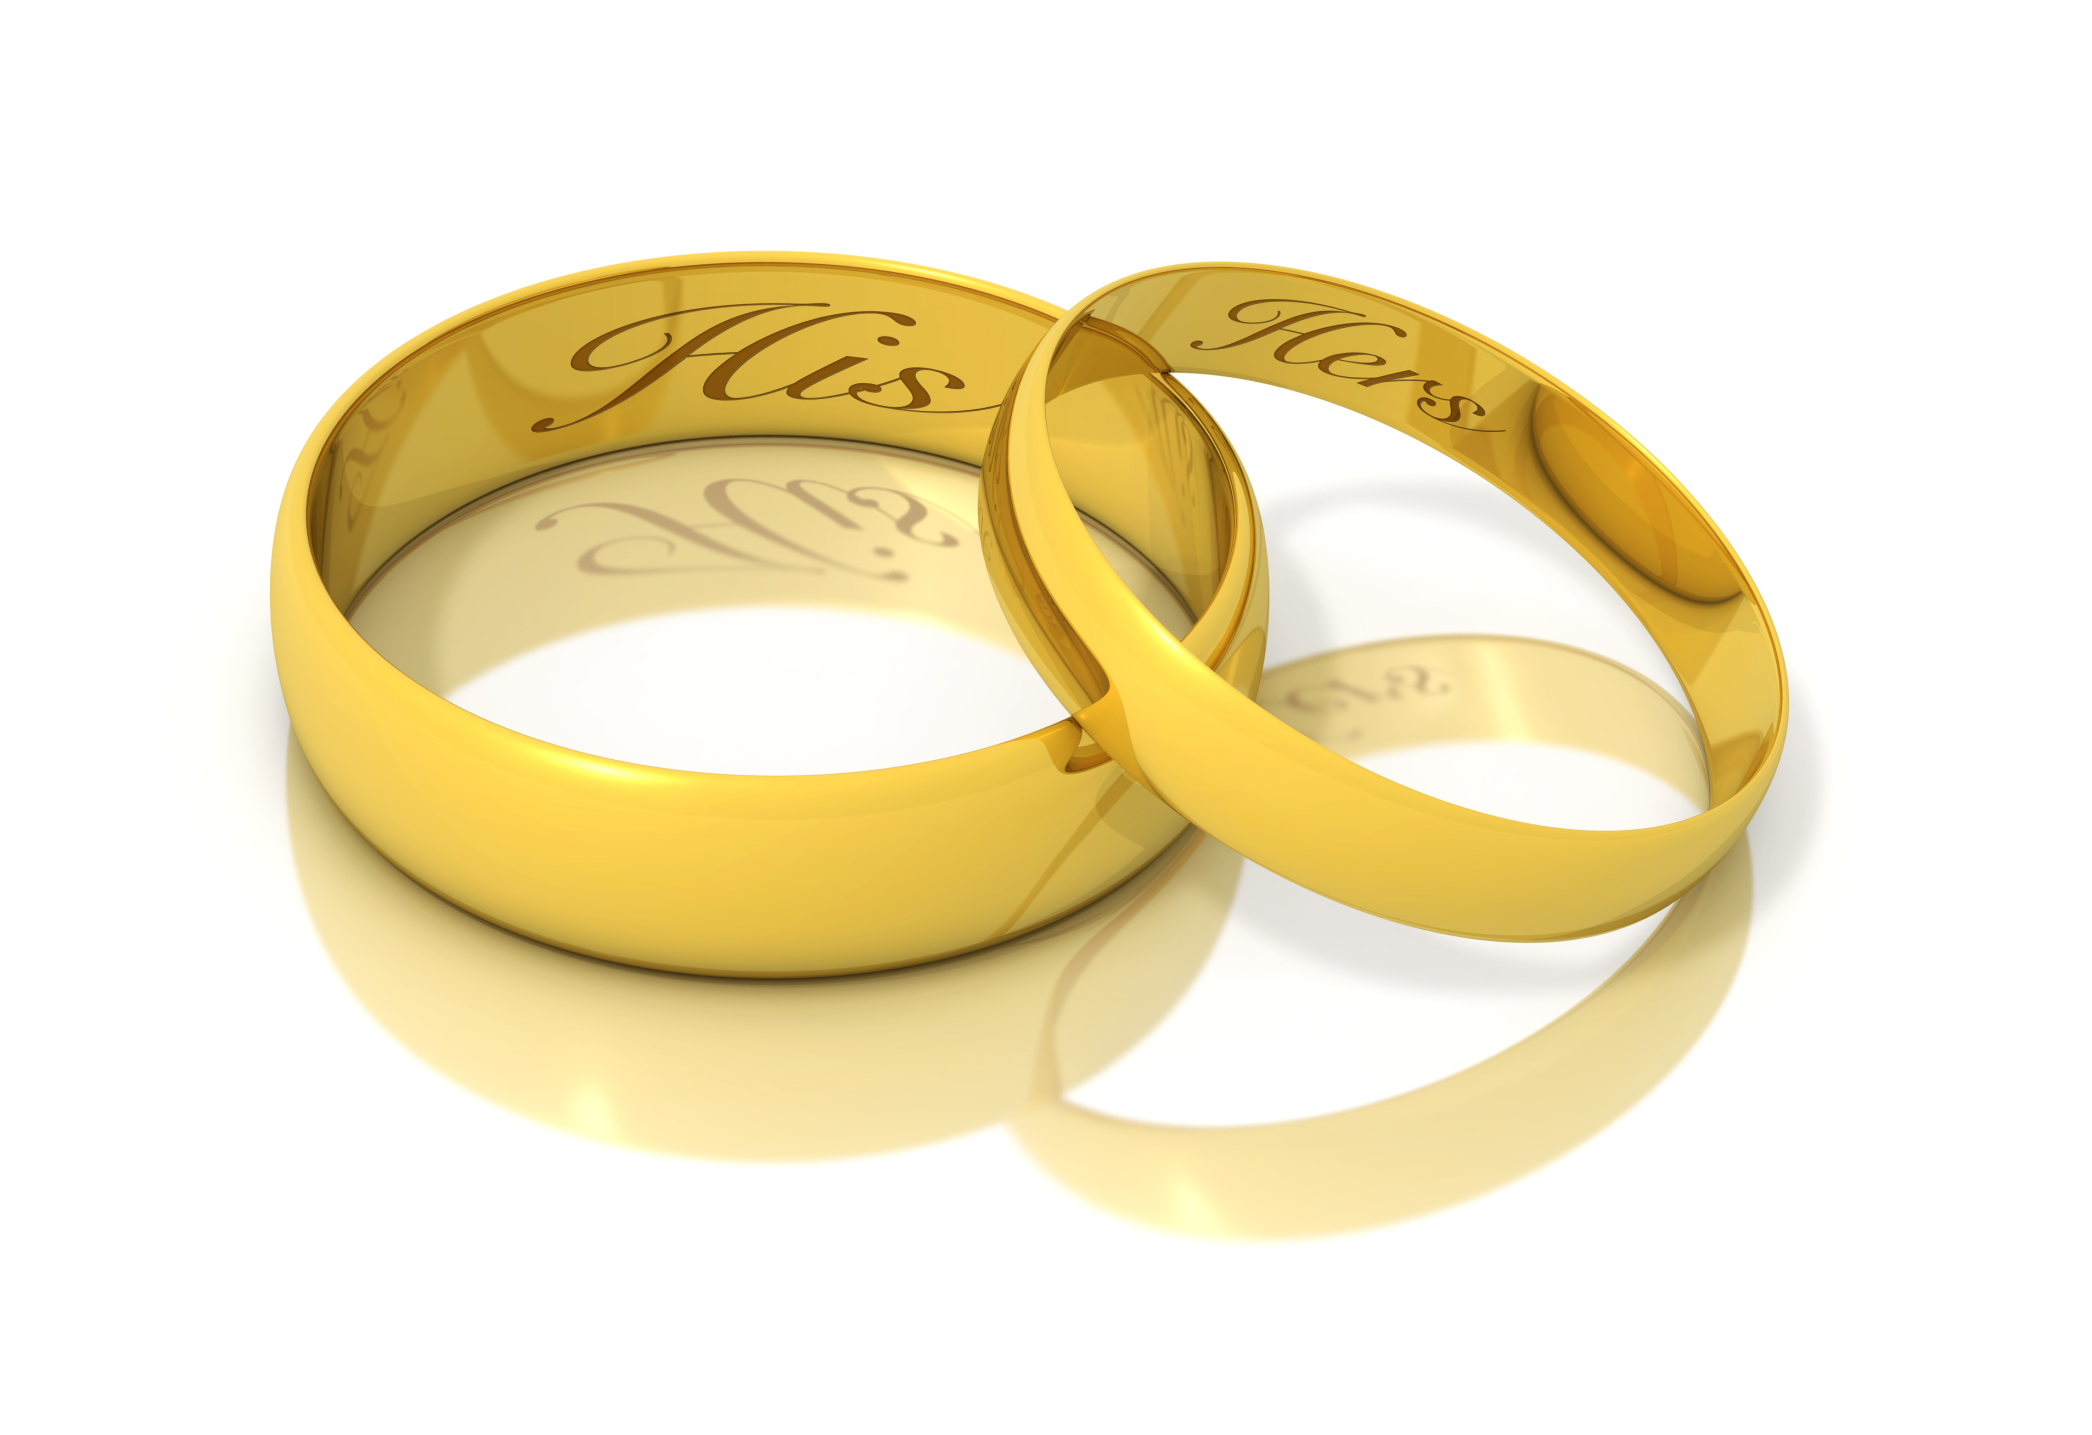 Most Contemporary Wedding Rings Are Simple Gold Bands Engraved On